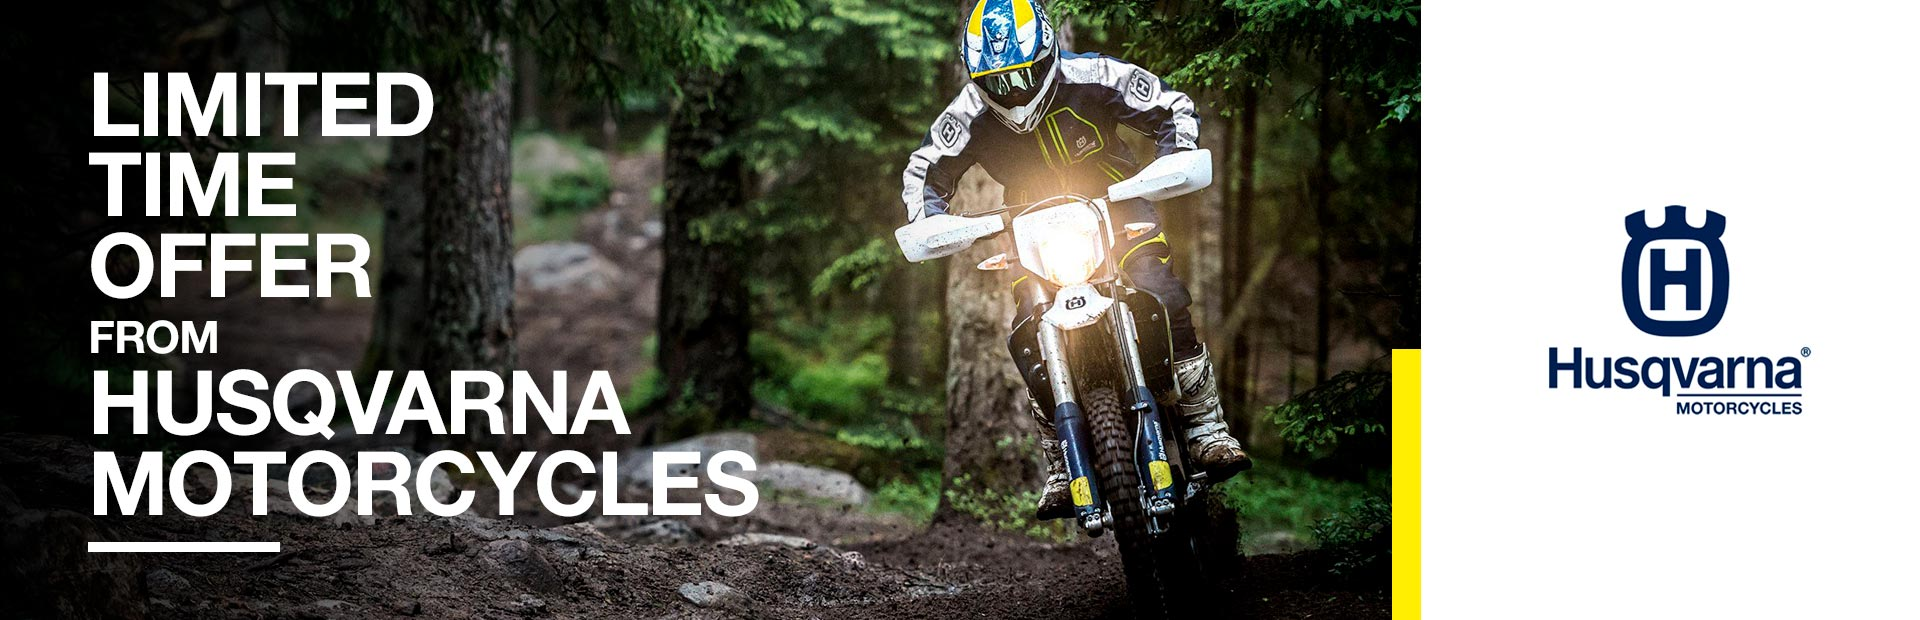 Husqvarna Motorcycles: Limited Time Offer from Husqvarna Motorcycles